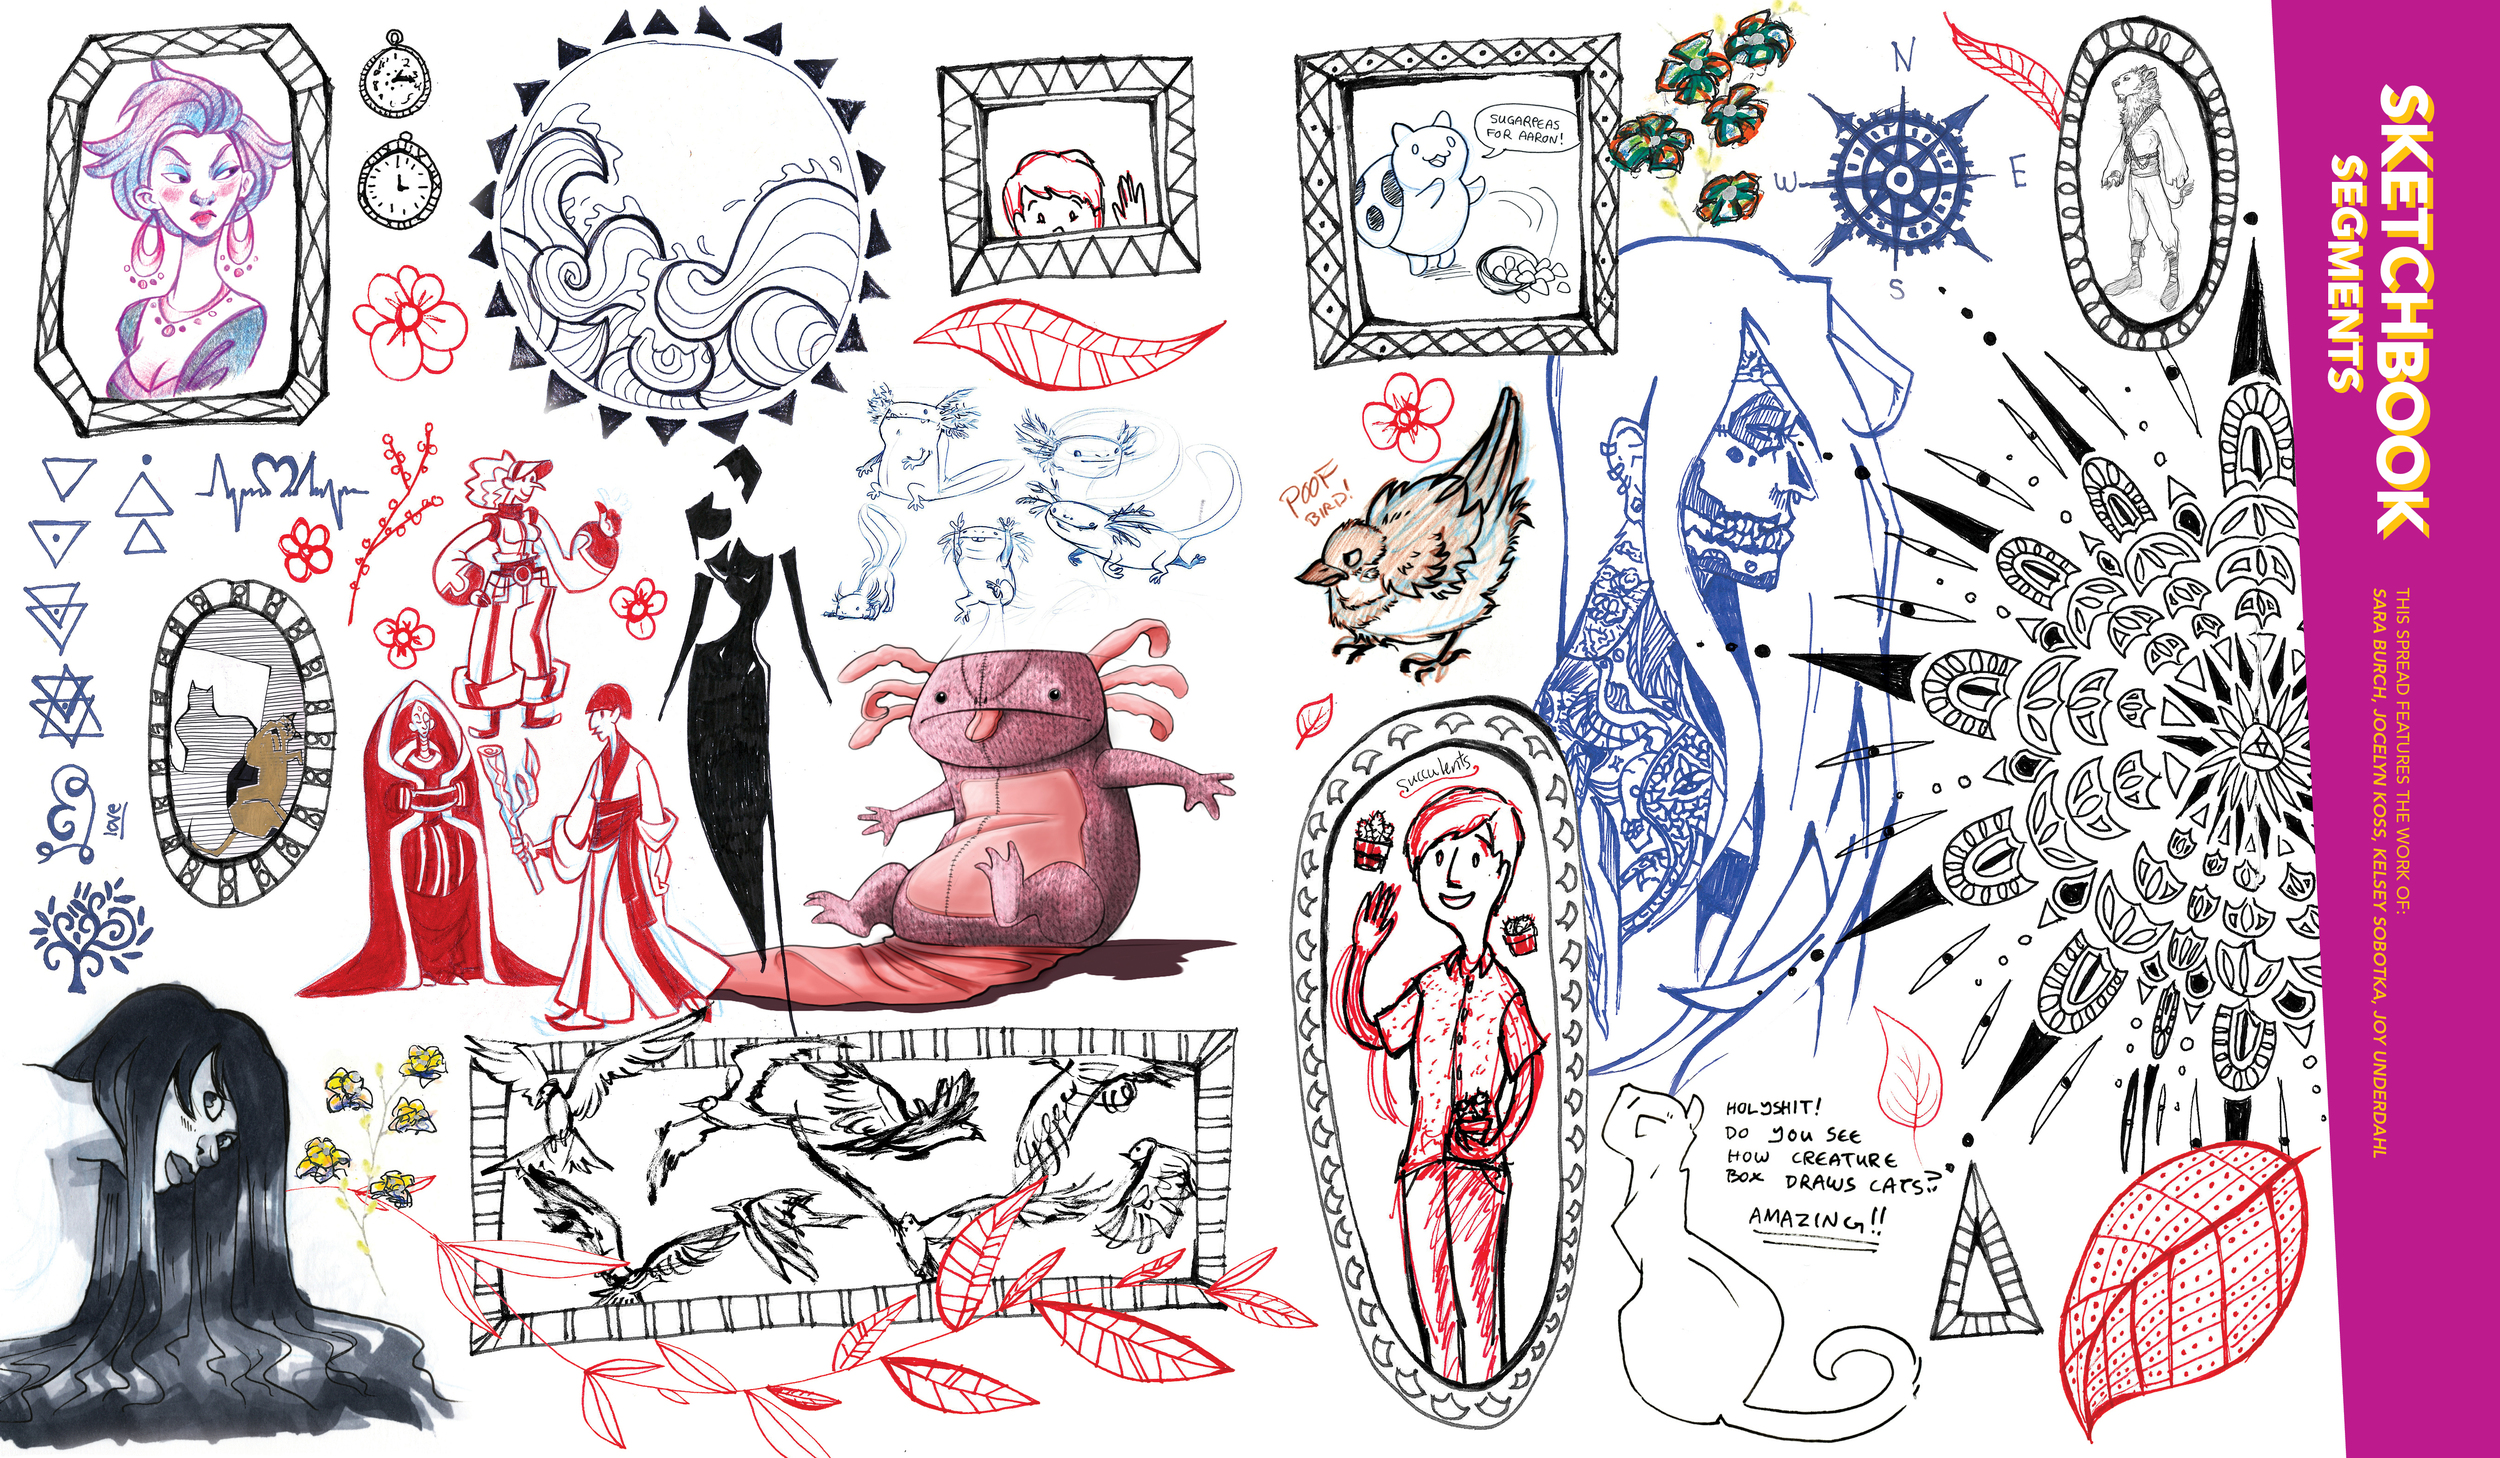 betwixt spreads for the interewebs5.jpg